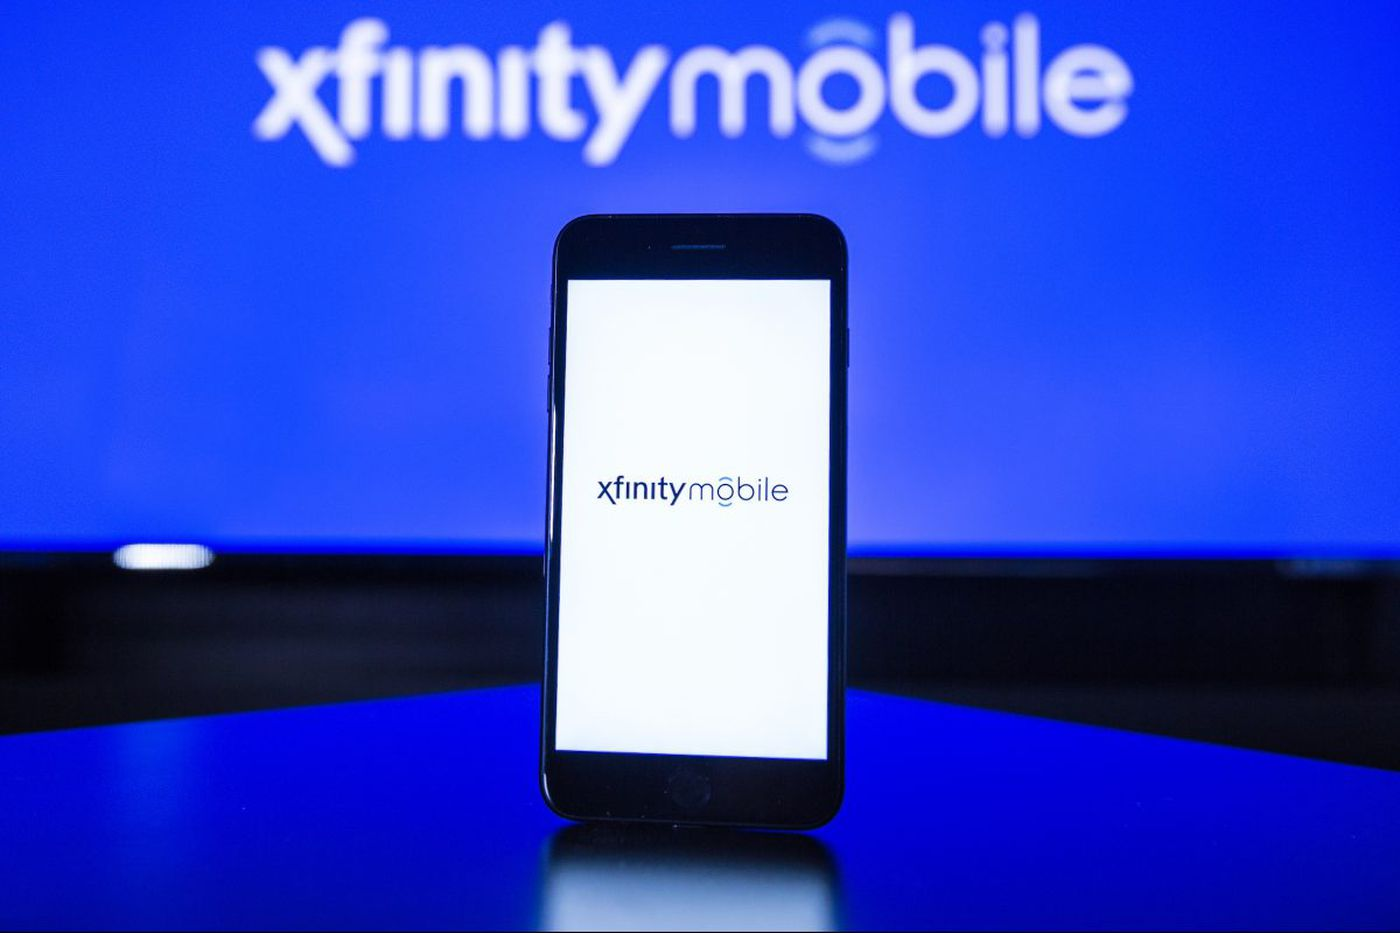 Comcast, Charter agree to 50-50 software partnership for mobile business